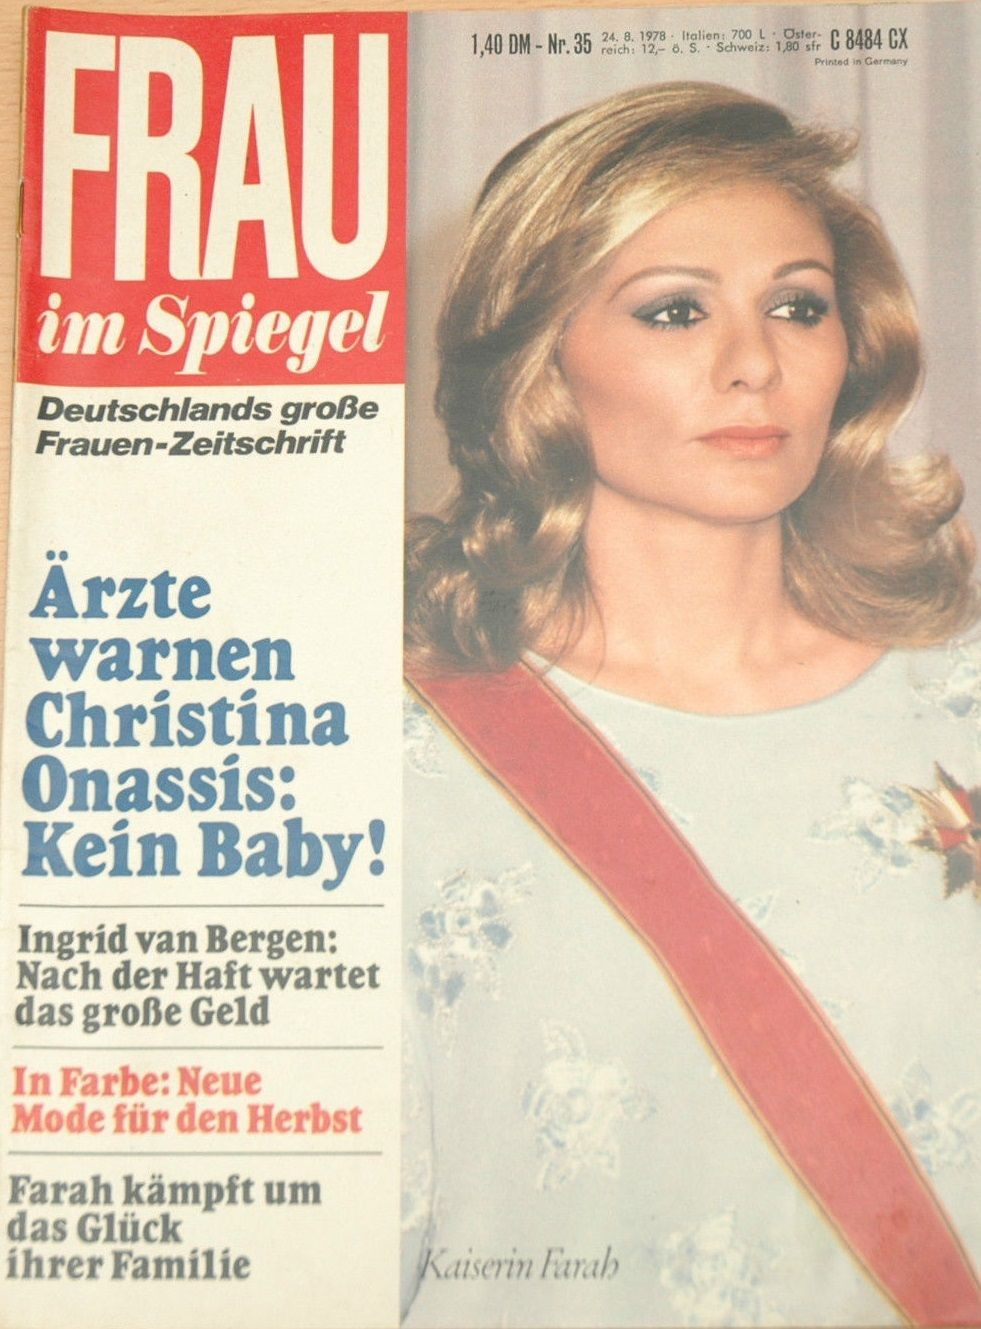 Spiegel 24 Empress Farah Frau Im Spiegel Magazine 24 August 1978 Cover Photo